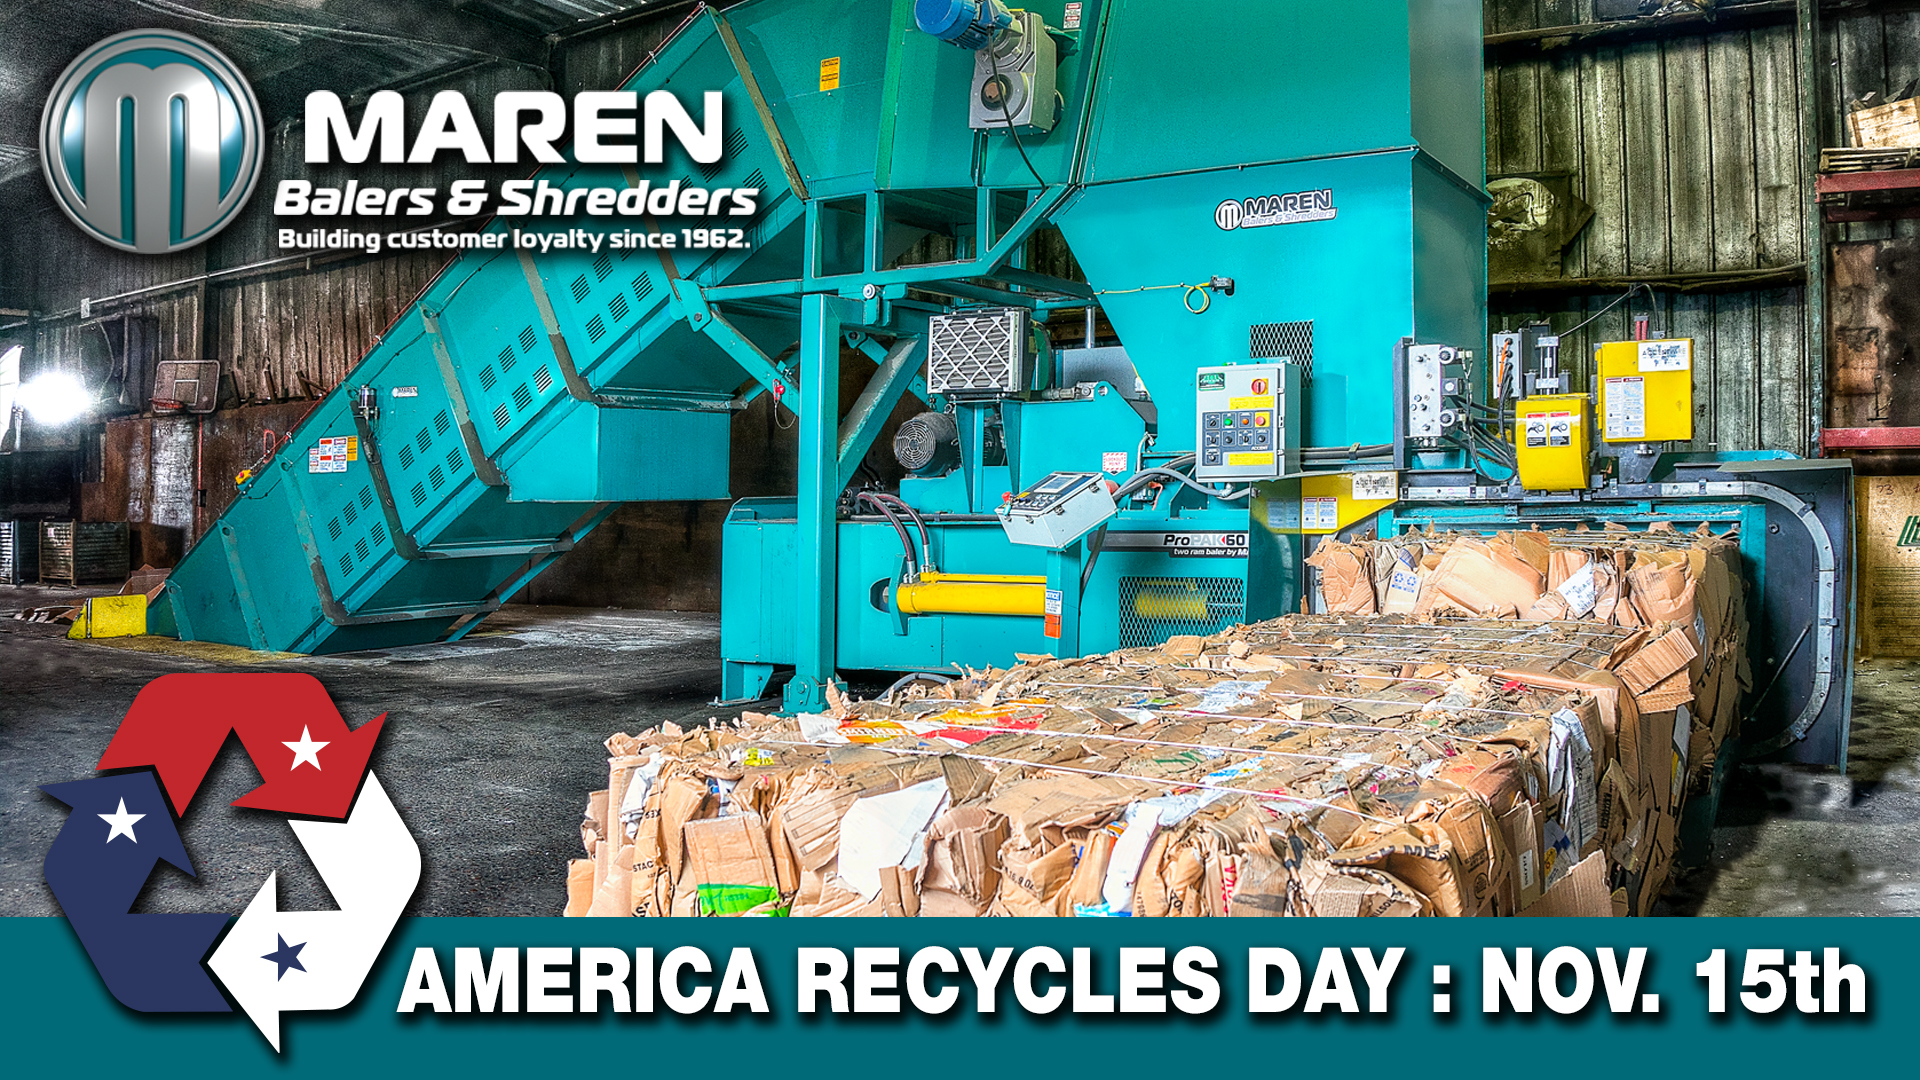 America Recycles Day - Maren Balers & Shredders